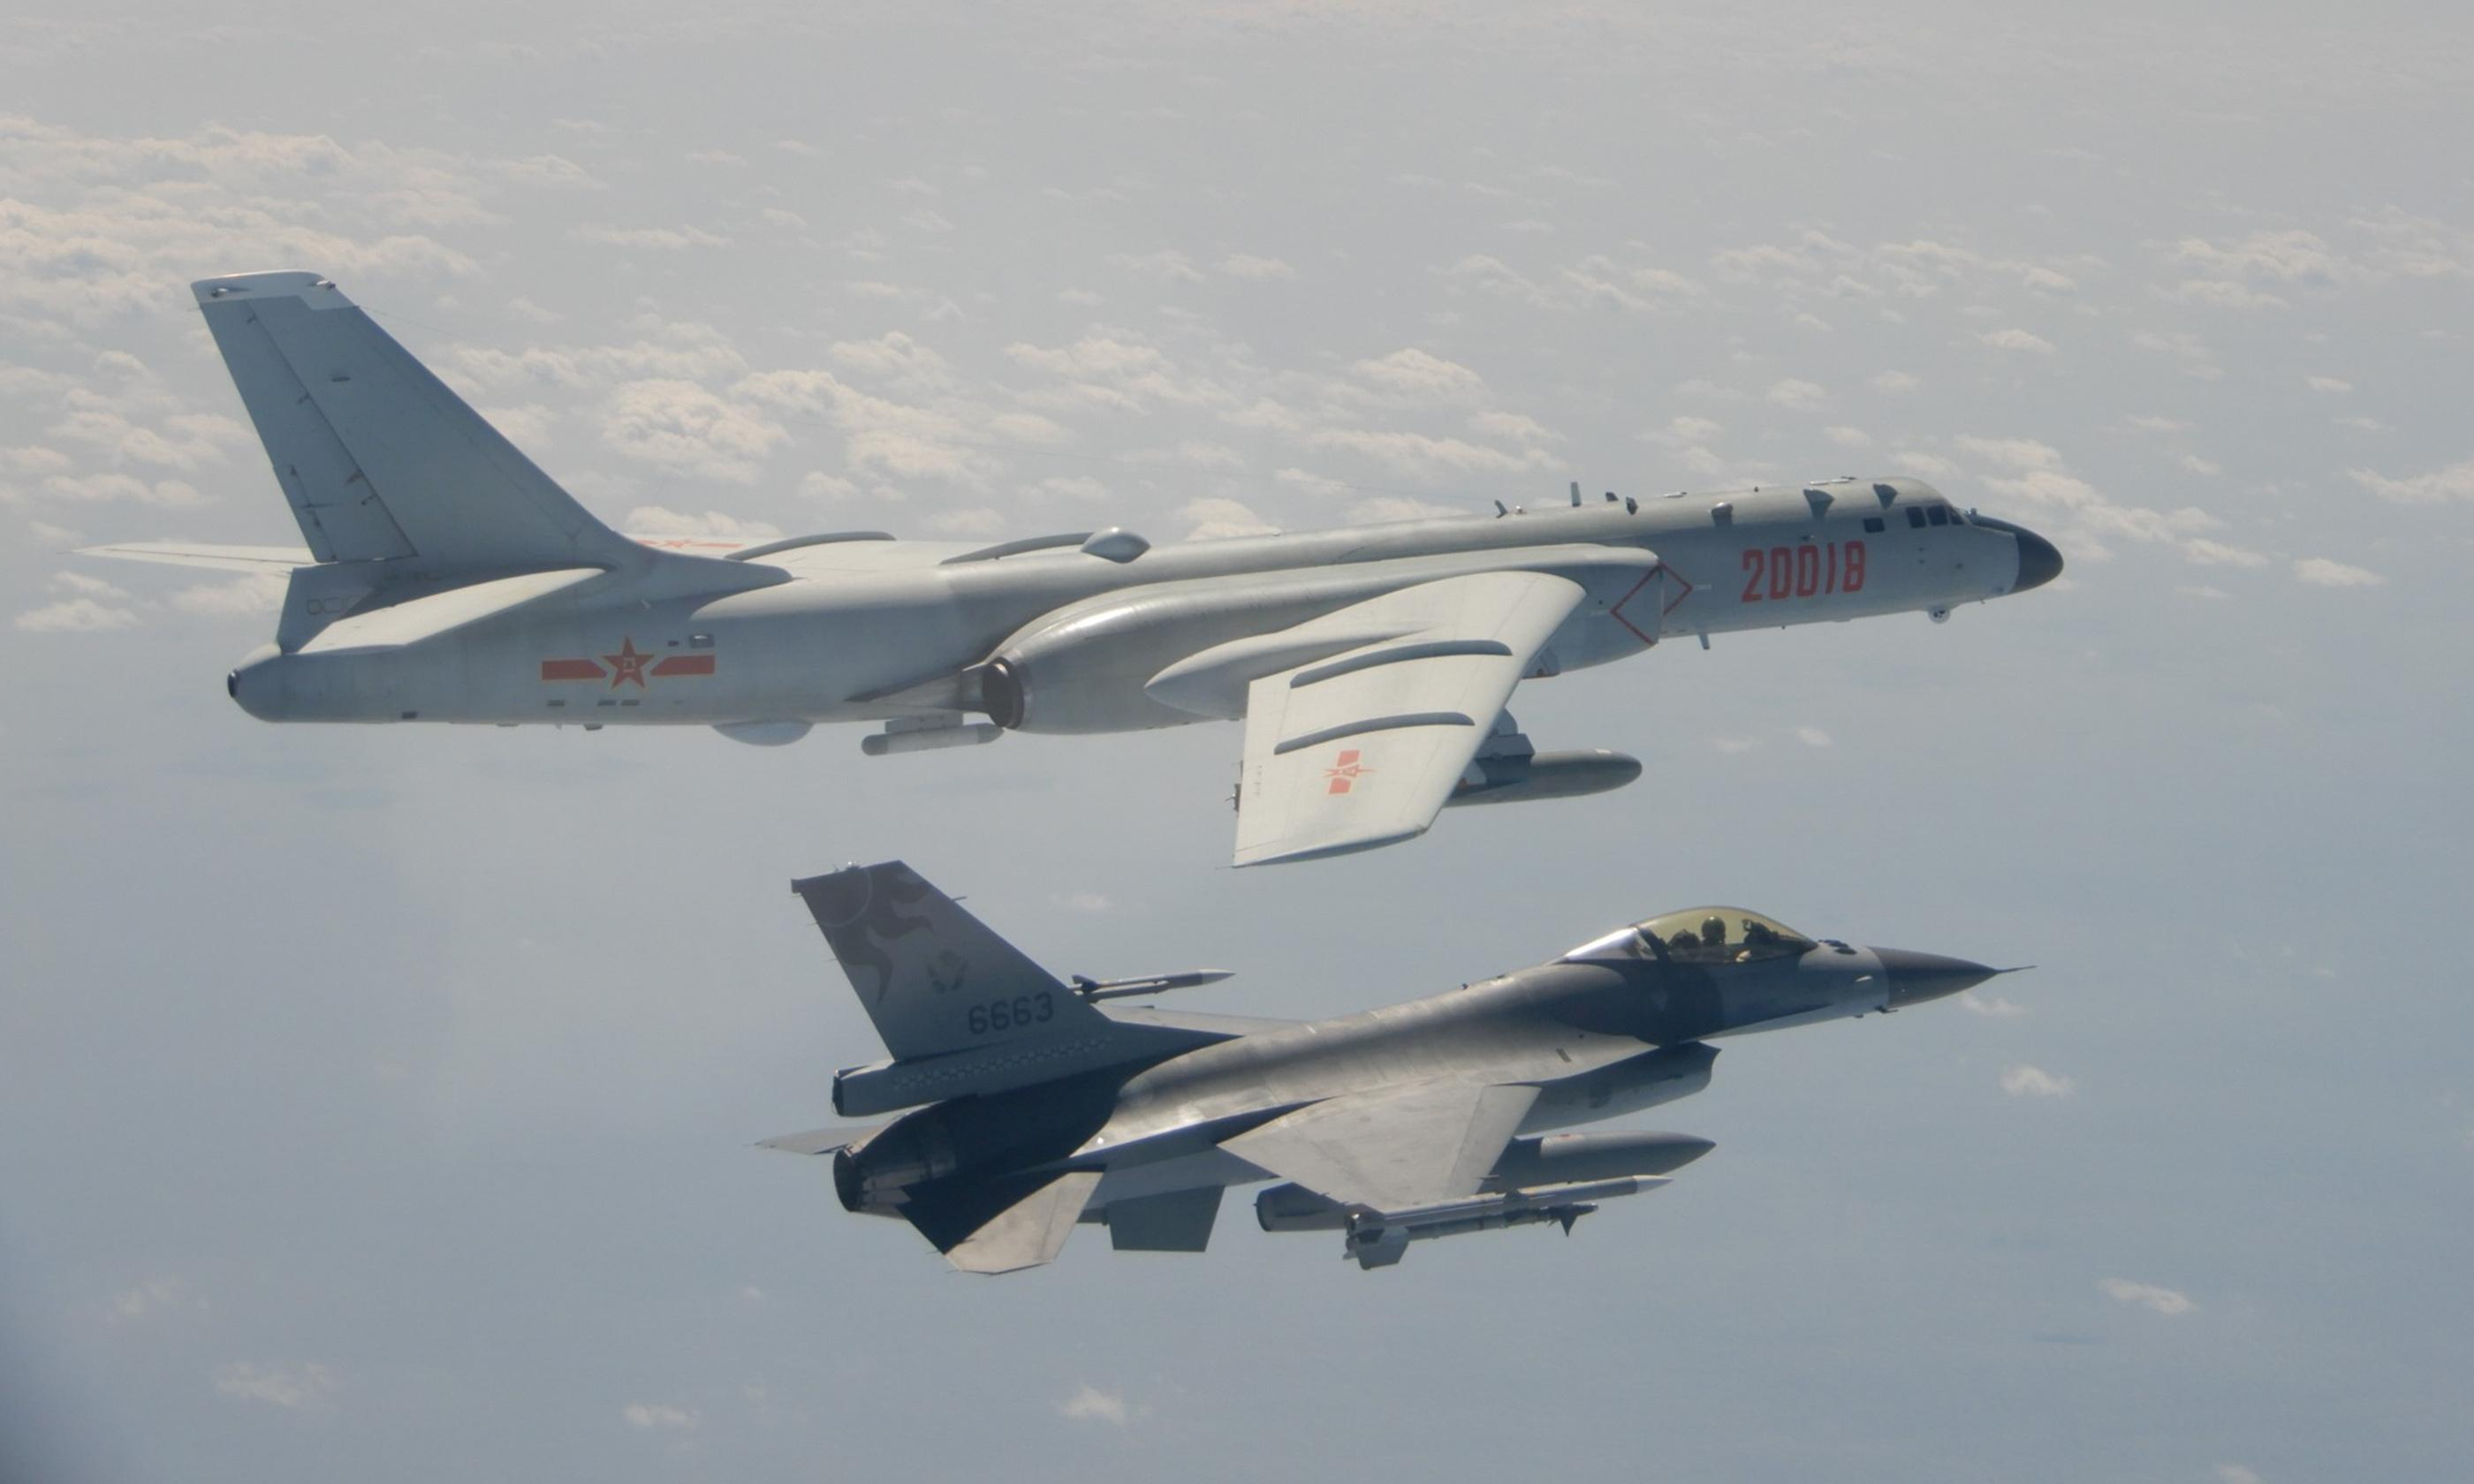 Taiwan scrambles jet fighters after Chinese aircraft enter airspace